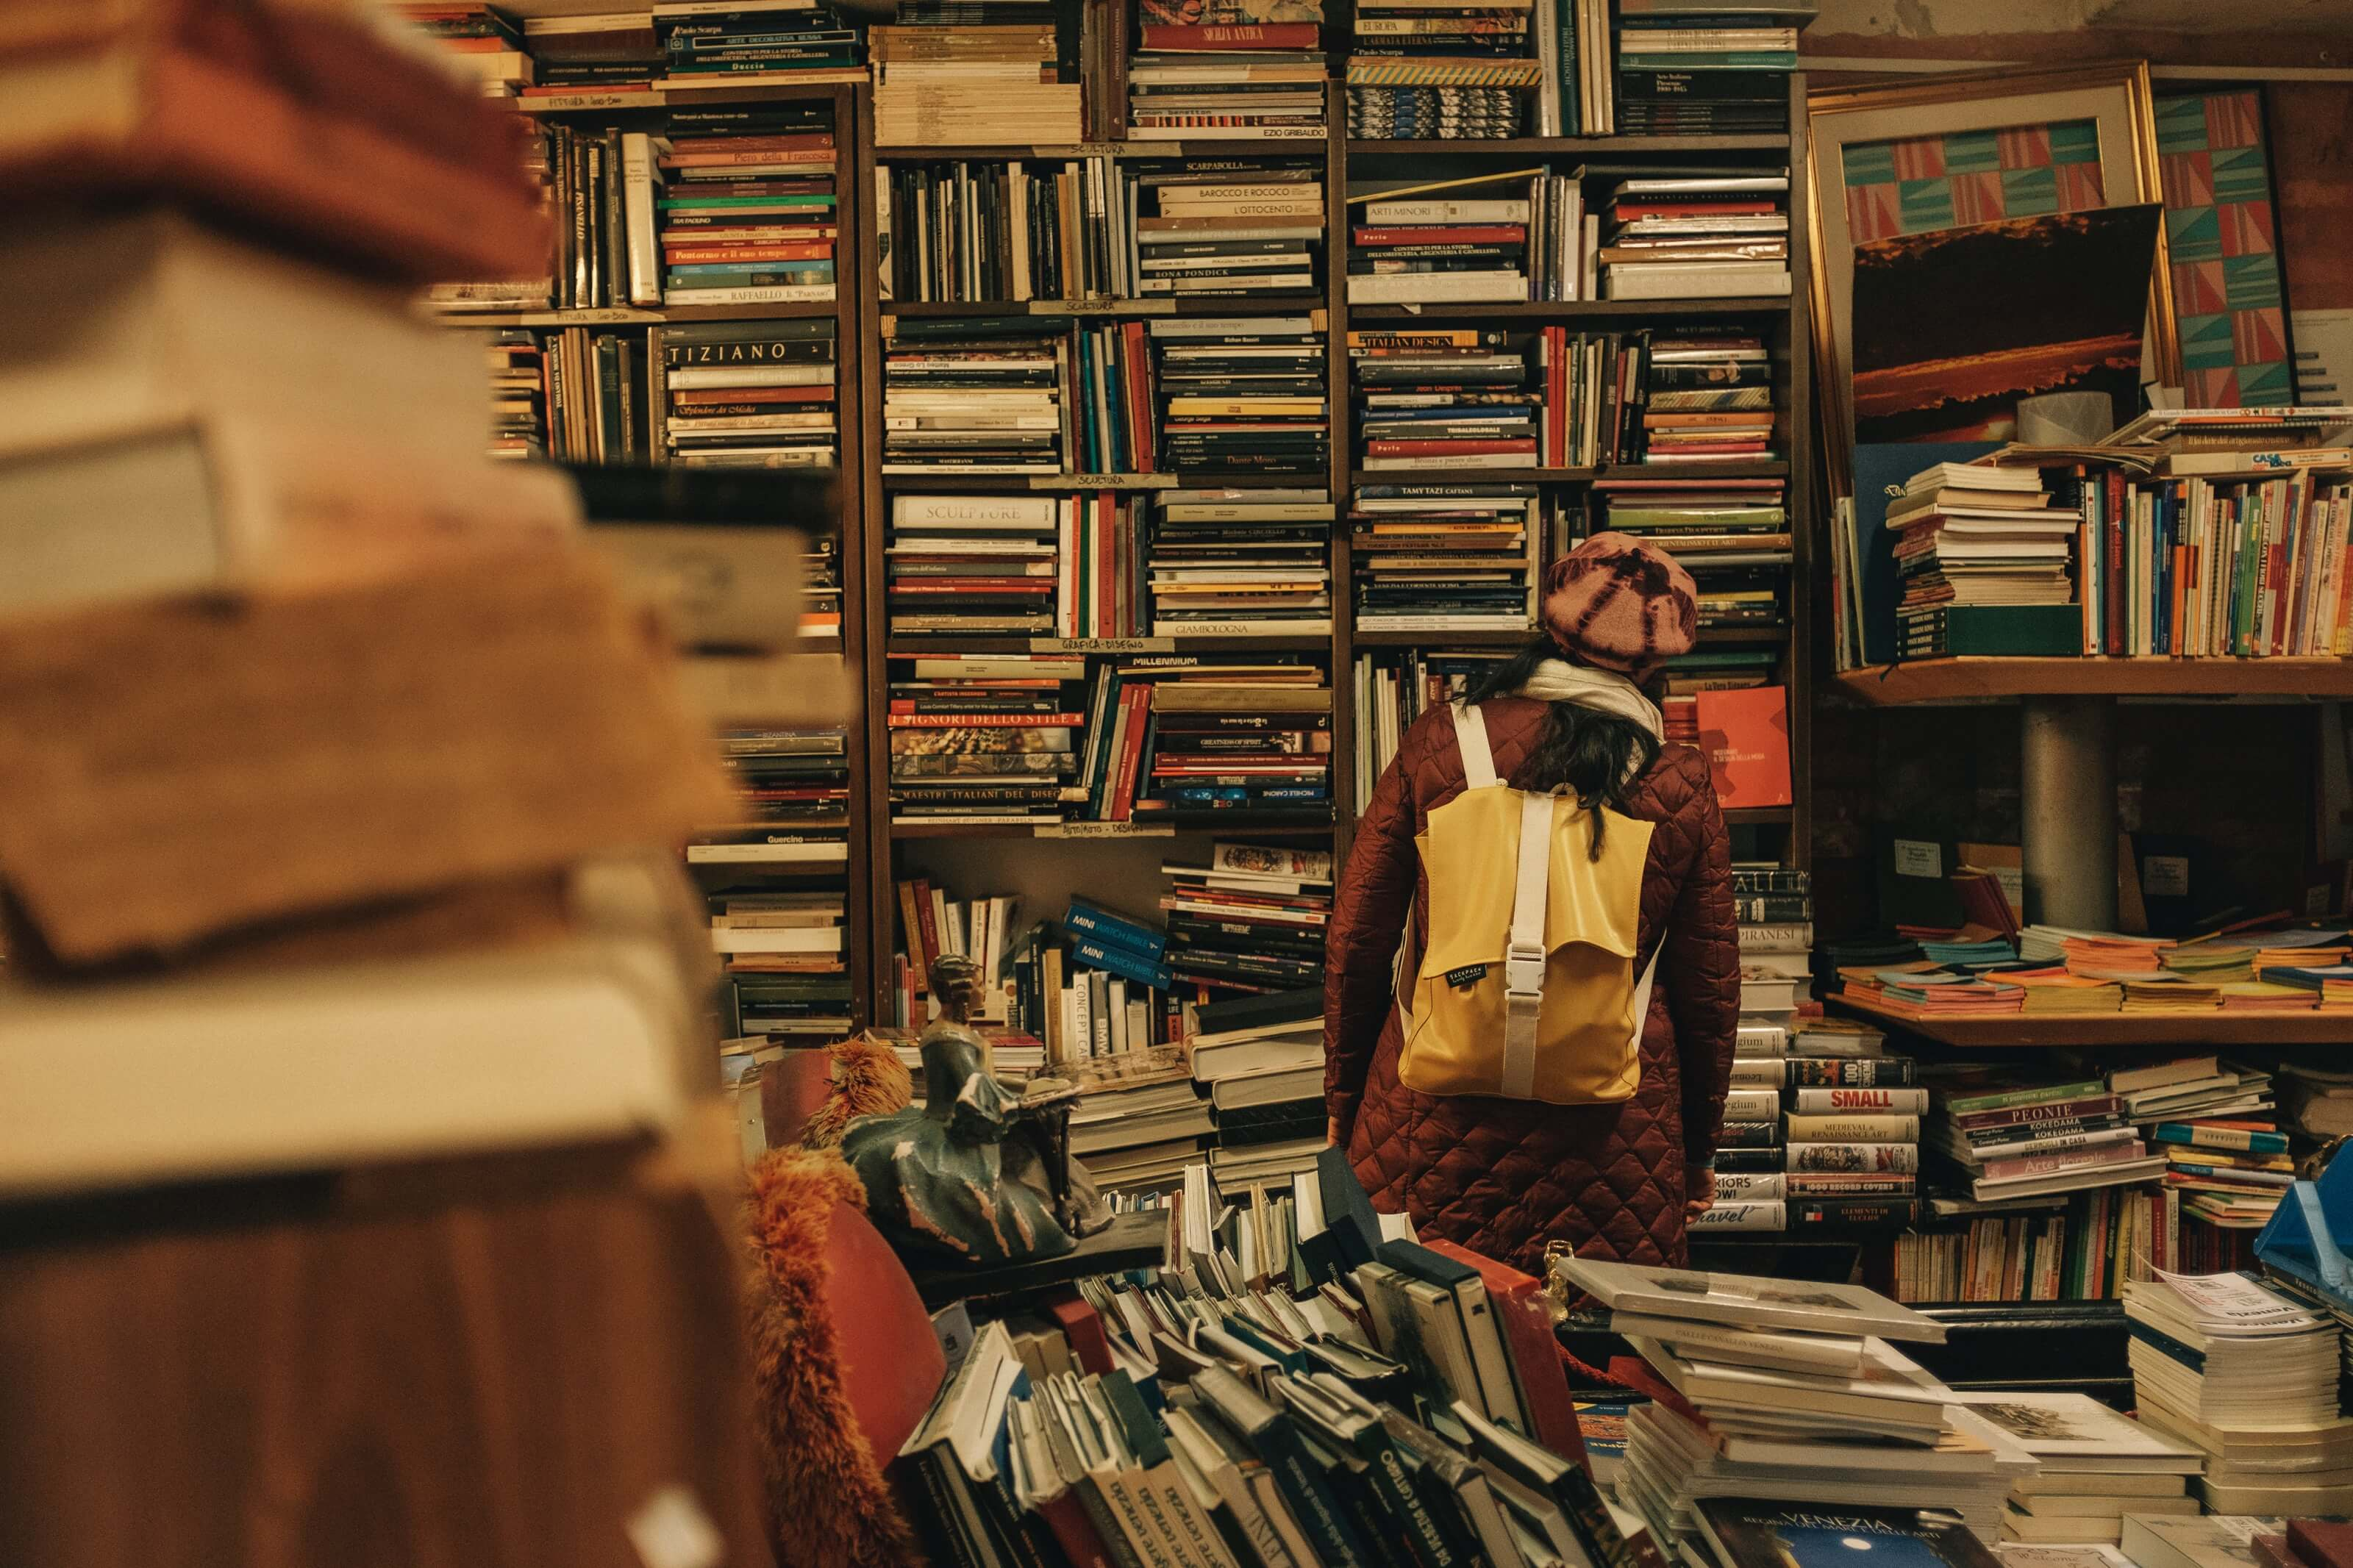 Clutter of books